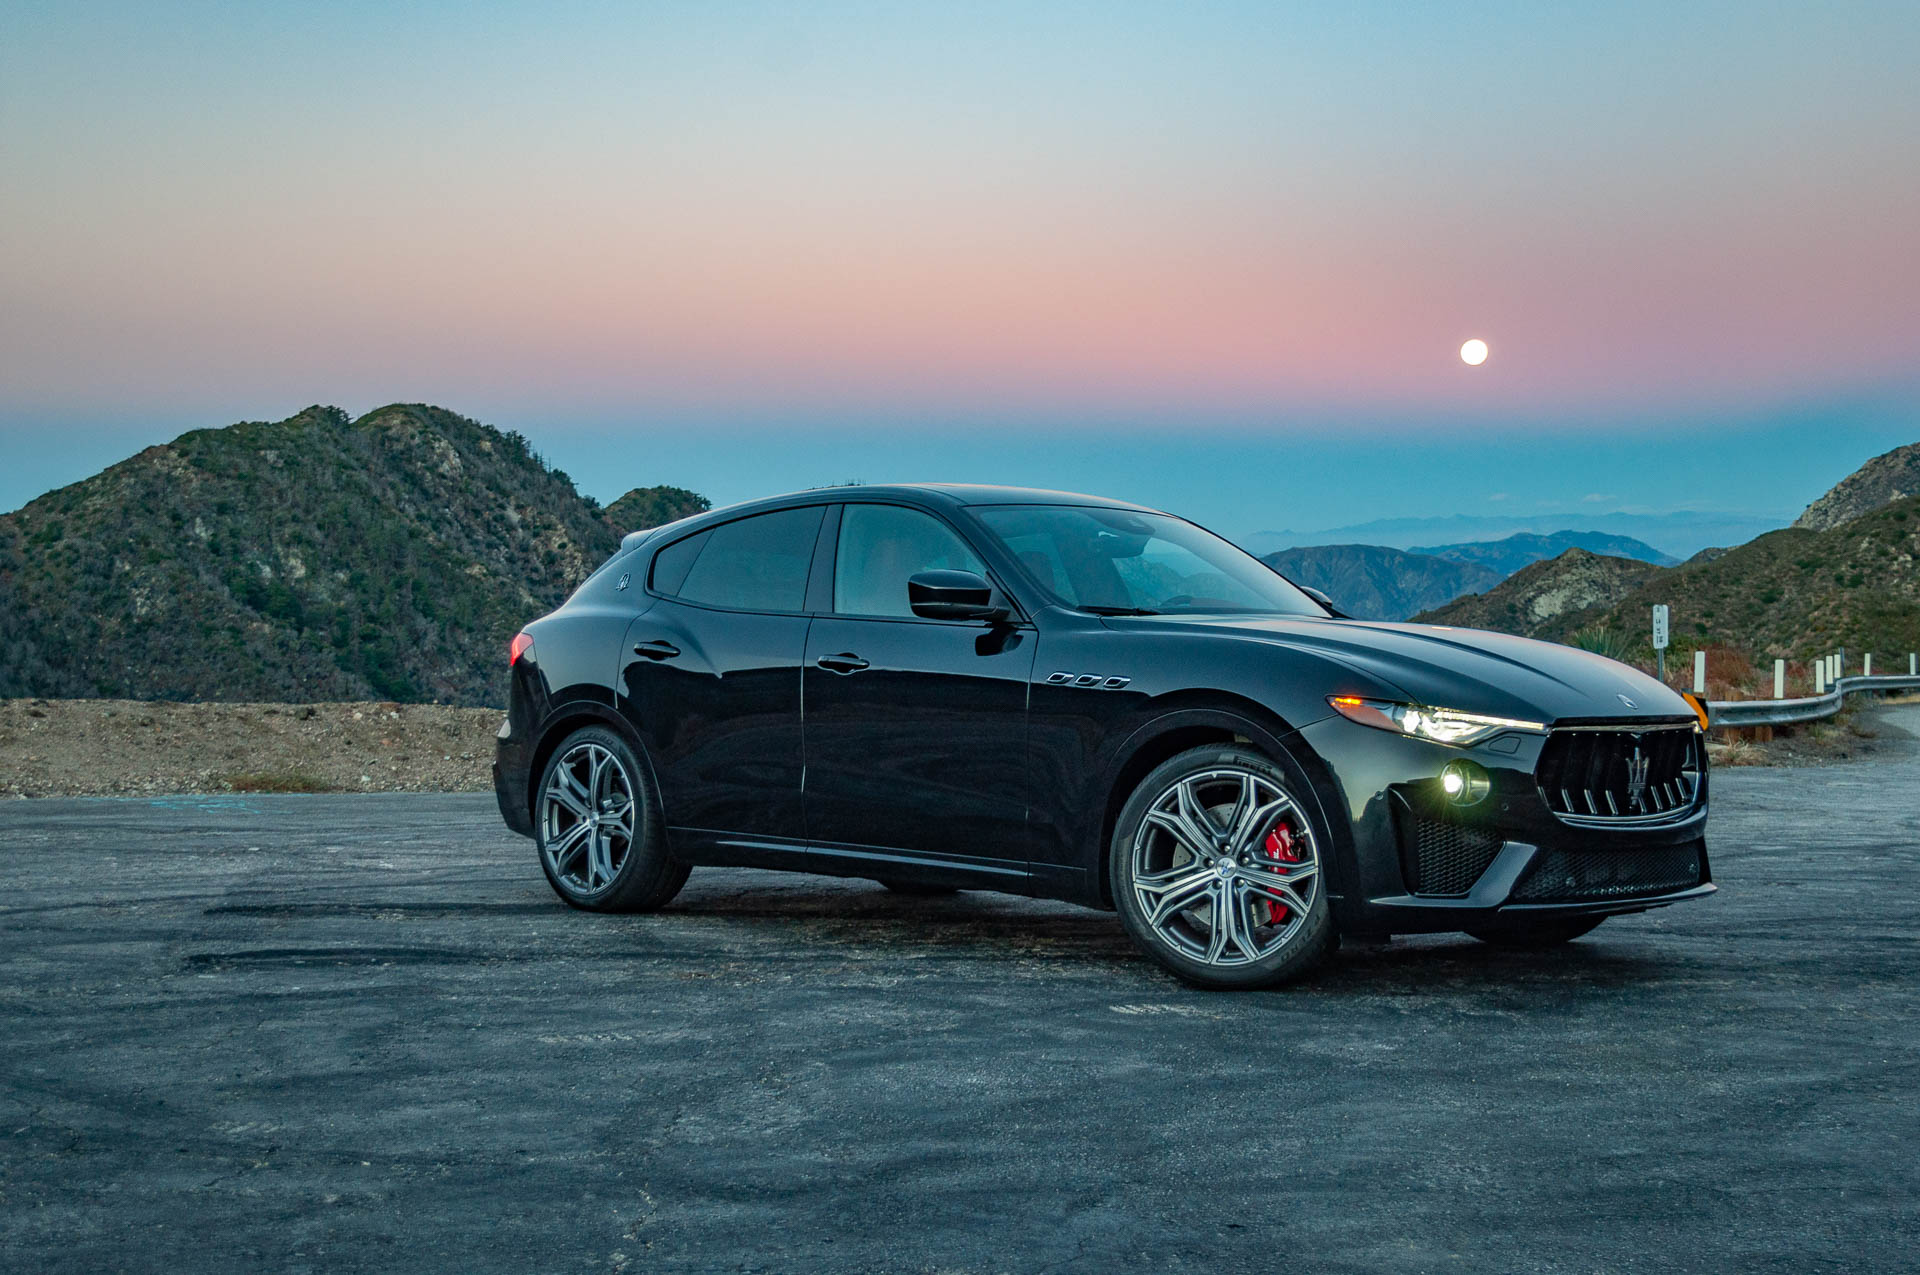 2019 Maserati Levante GTS first drive review: Beauty and a beast